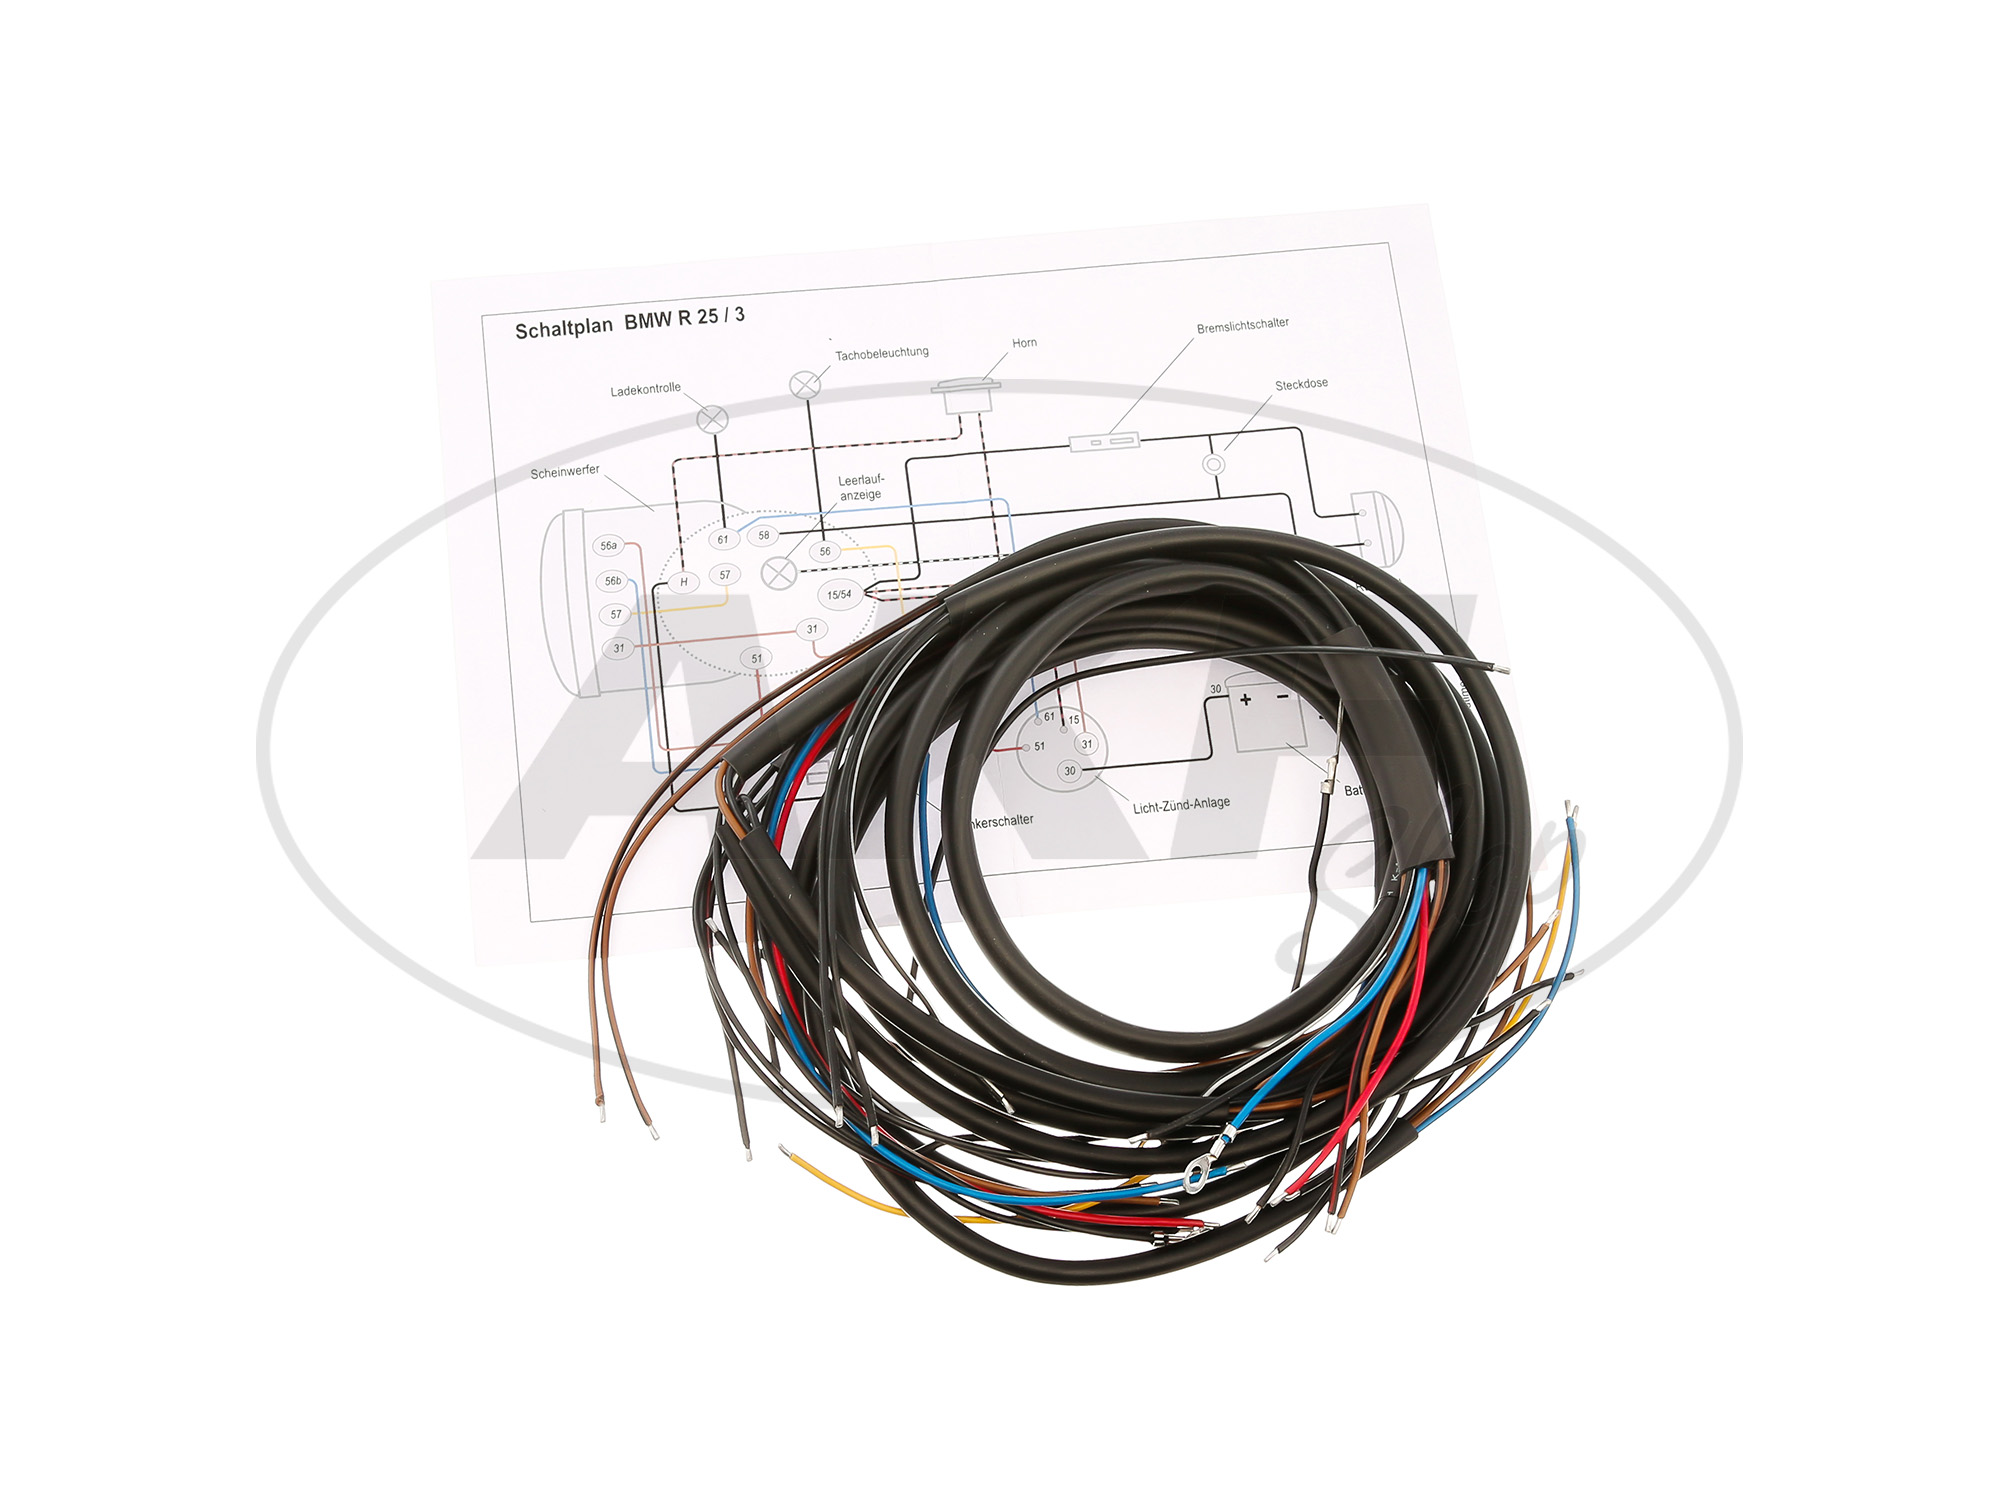 Image #1 Cable suitable for BMW R25 / 3 ...